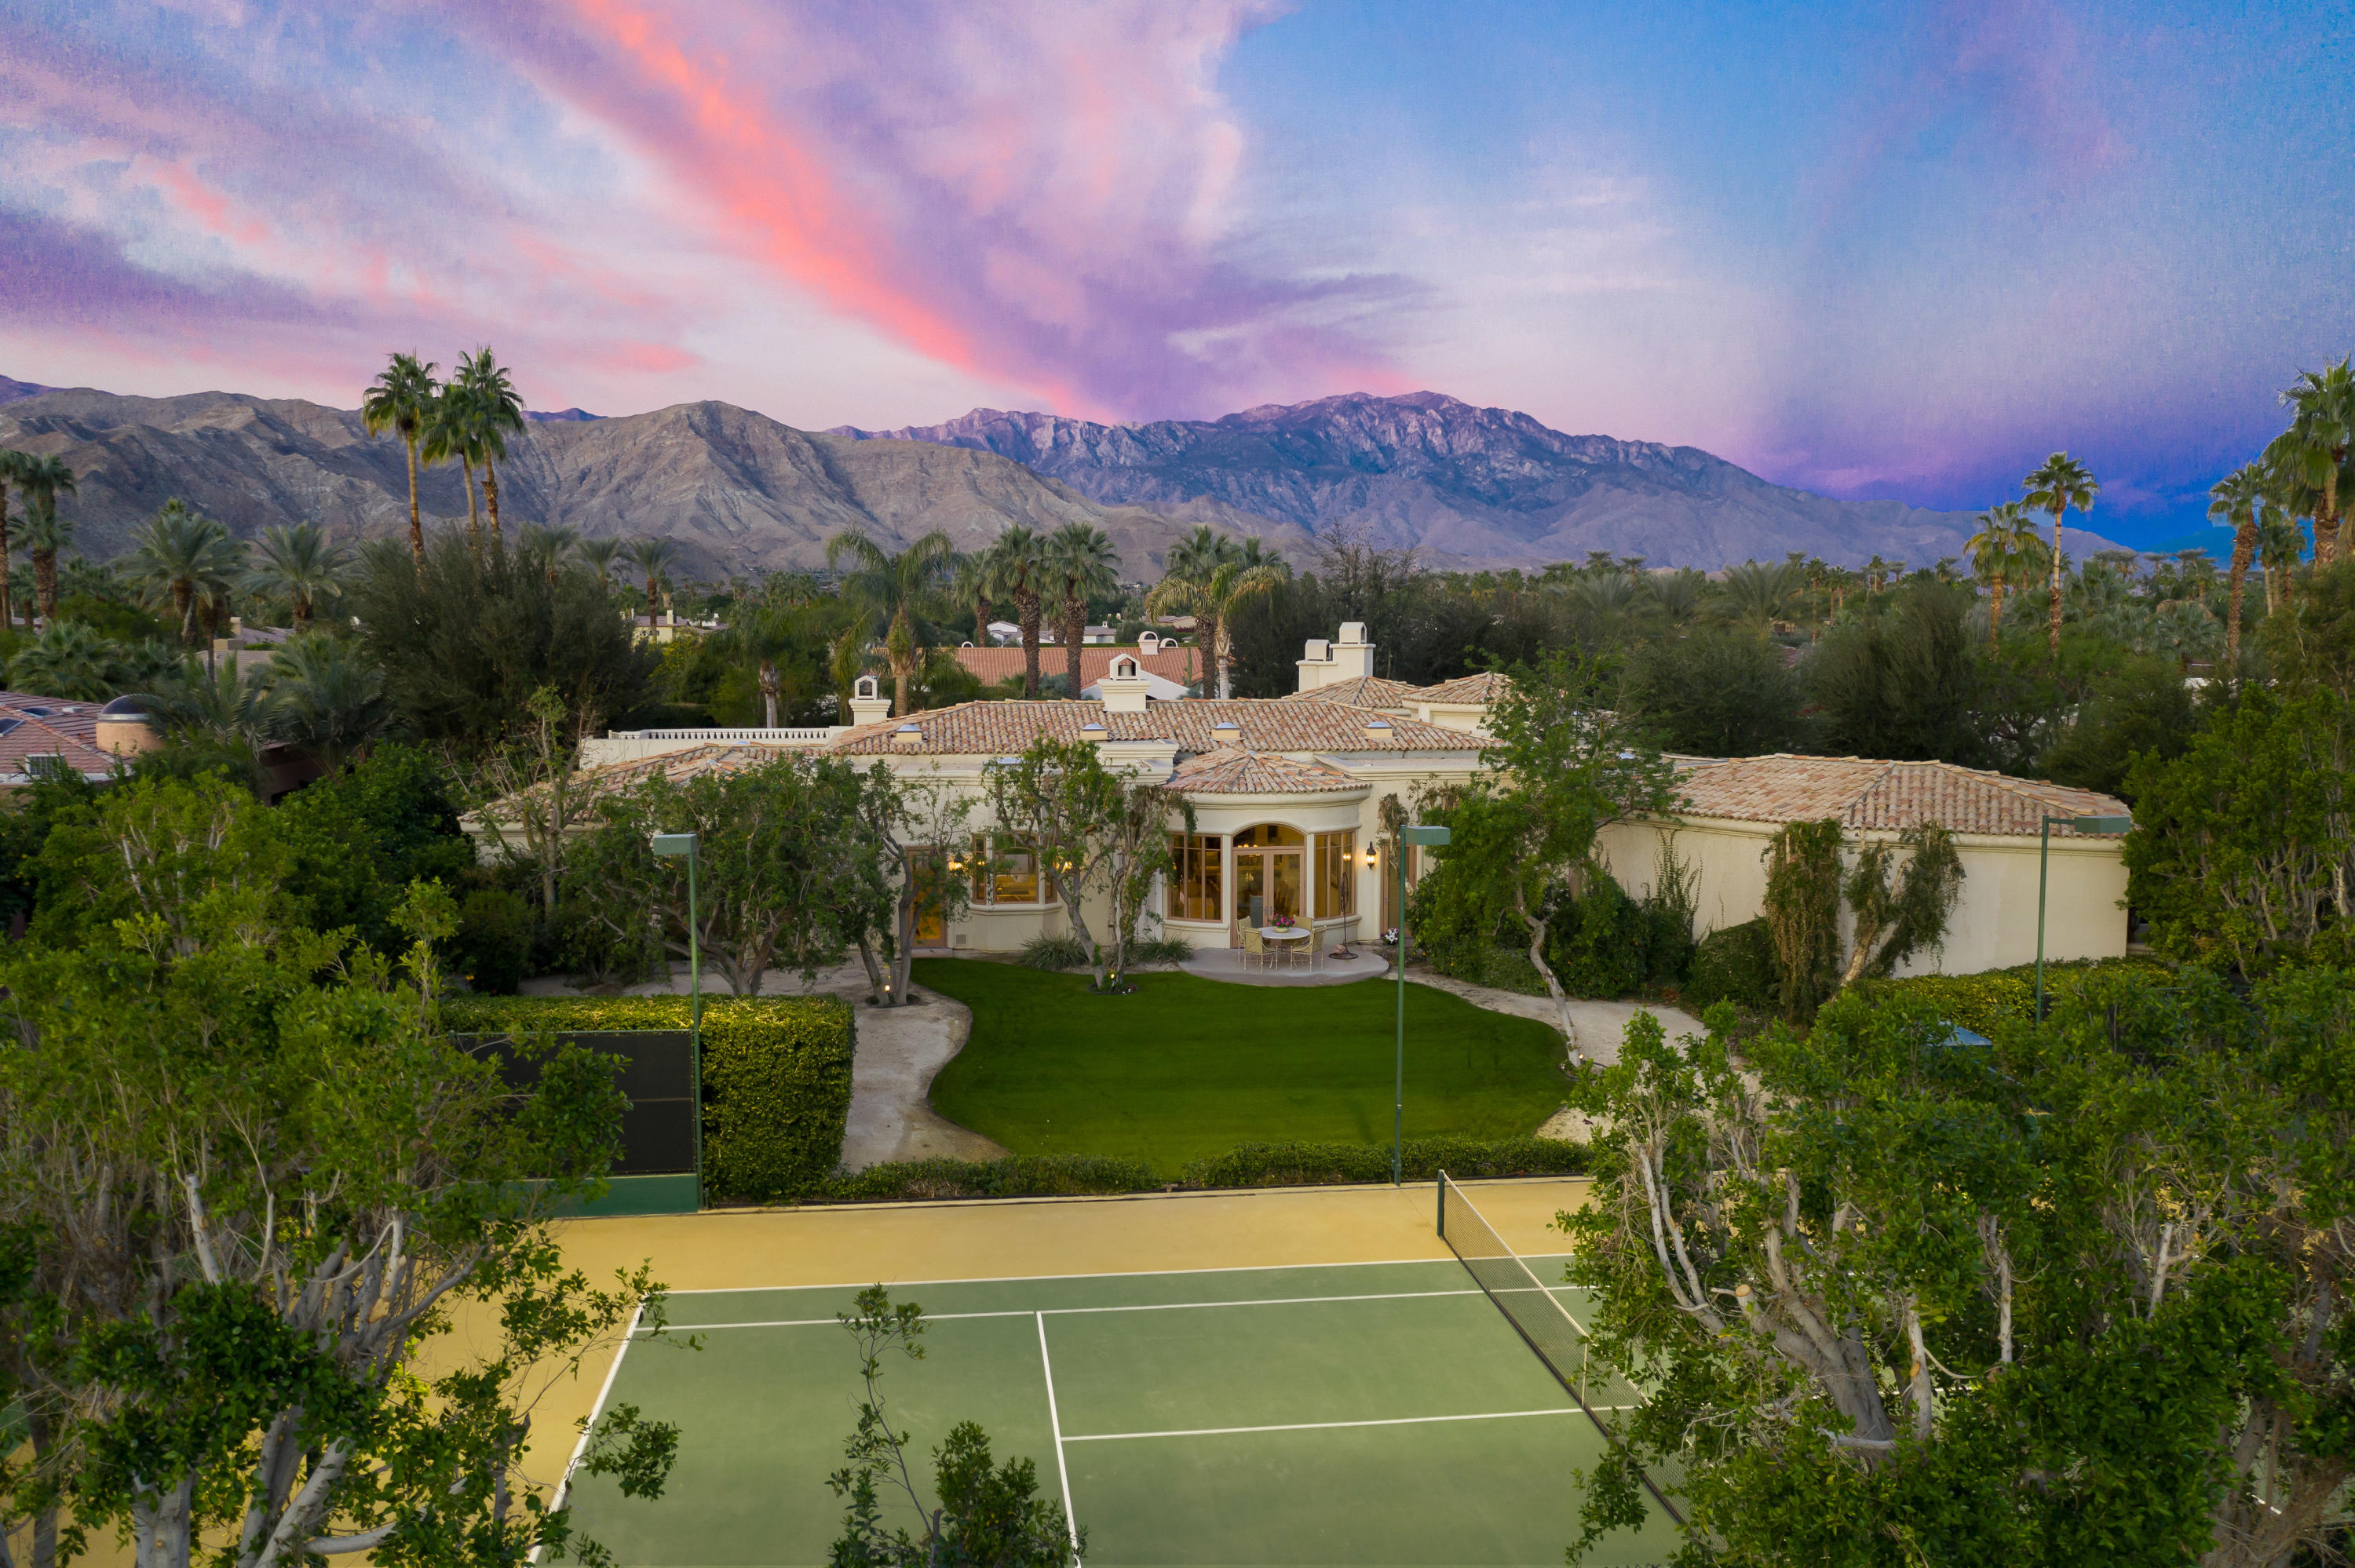 Gorgeous tennis estate at Mission Ranch in the heart of Rancho Mirage! Five bedrooms, five and a half baths plus gym and library. Approx. 5,783 sq. ft. on over one acre. Features two story entry foyer to formal living room with slab limestone wet bar and two way masonry fireplace that leads to family room and gourmet kitchen with granite counter tops, maple cabinetry, top of the line appliances and built-in desk area. Formal dining room, beautiful library with built-ins and fireplace, and a full gym or could be office.  Master suite with fireplace and inviting bath with custom glass block shower, jacuzzi tub, three vanities and his and hers walk in closets. Four more ensuite bedrooms make for perfect guest hospitality.  Exquisite finishes throughout including limestone flooring, cast limestone fireplace surrounds, coffered ceilings and more! The outdoor entertainment area features an extended veranda with fireplace and BBQ center. Custom salt water pool and spa with waterfall, lighted north/south regulation tennis court and roof top viewing deck.   The property features a wide variety of fruit trees and fantastic south mountain views! Mission Ranch is a wonderful equestrian neighborhood off prestigious Clancy Lane! Offered designer furnished per inventory!